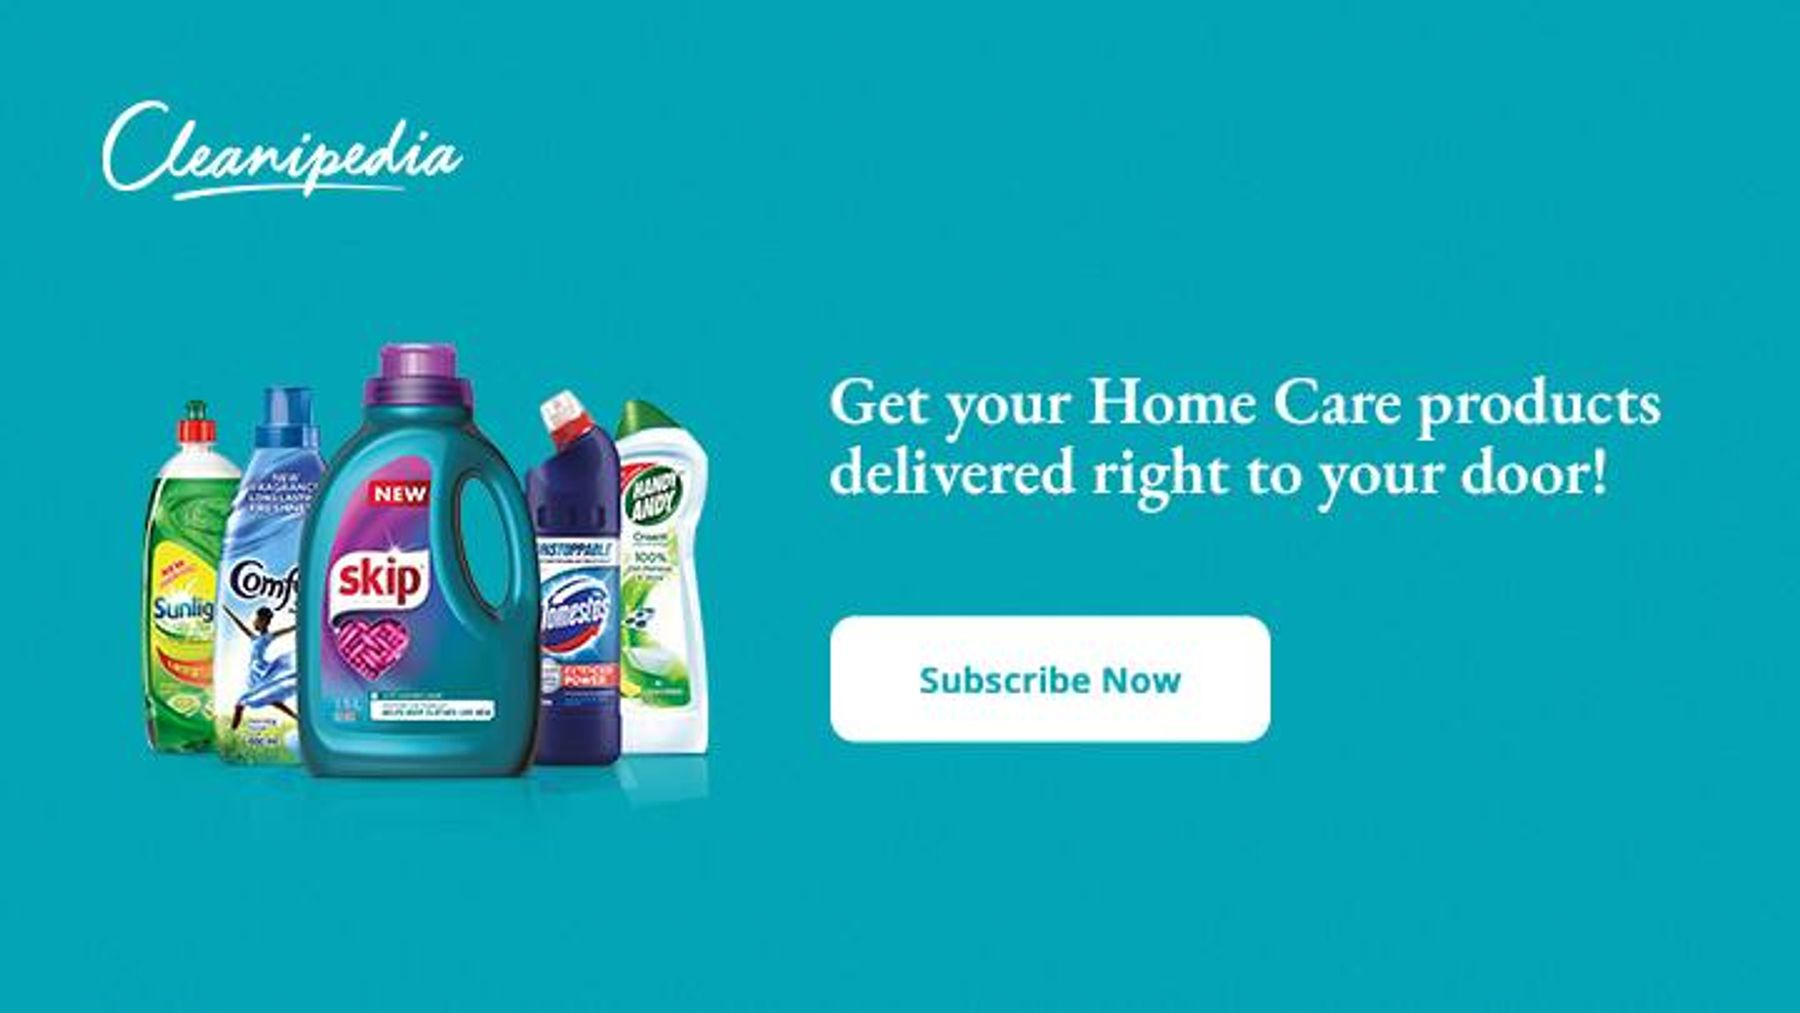 Get your Home Care products delivered right to your door!